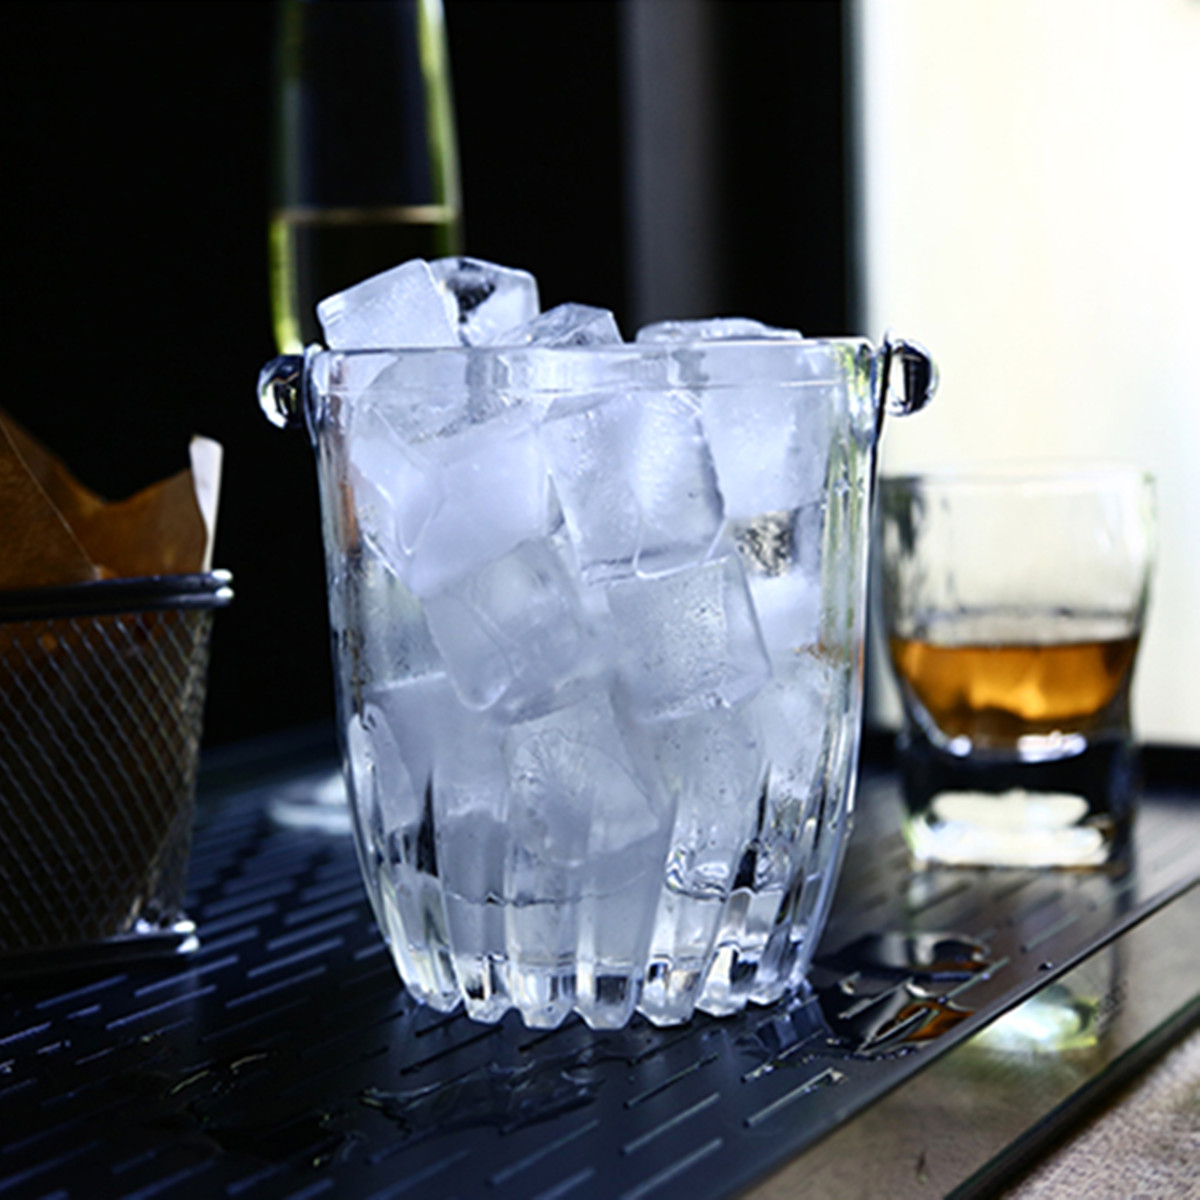 900mL Clear Glass Ice Bucket Beer Champagne Wine Cooler Bucket With Tong